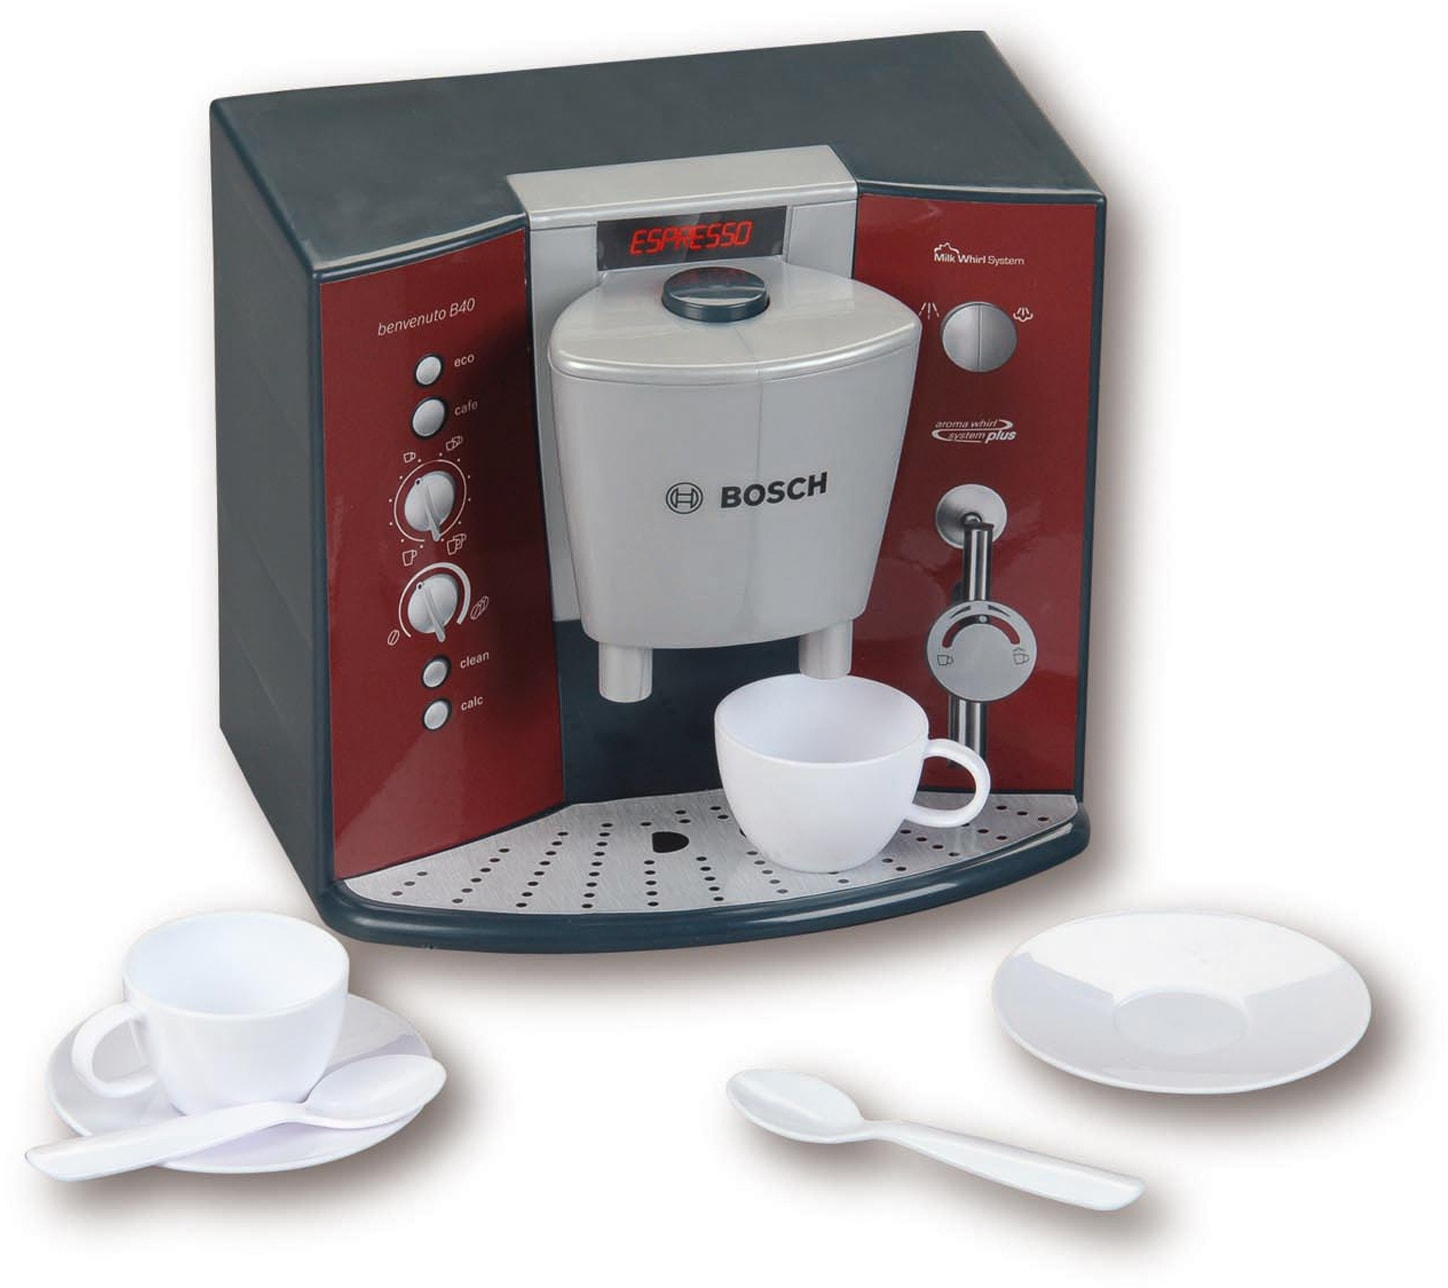 Klein Miele Küche Triangel Klein Kinder-kaffeemaschine »bosch Kaffeemaschine Mit Sound & Espressoset«, Mit Soundfunktion, Made In Germany | Quelle.de